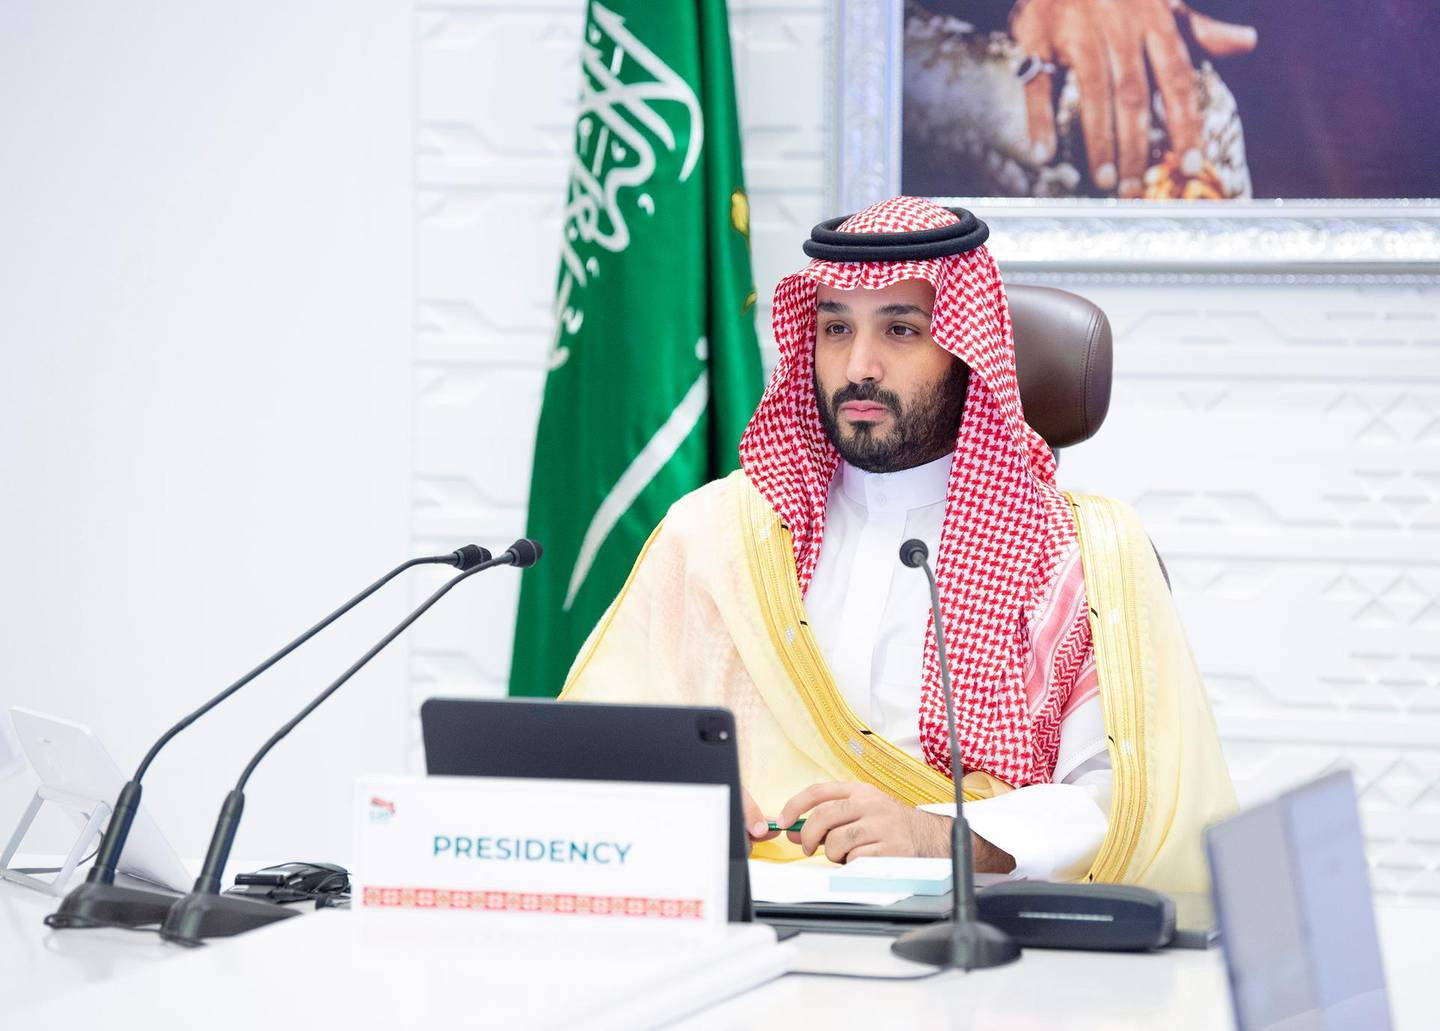 Saudi Crown Prince Mohammed bin Salman chairs final session of the 15th annual G20 Leaders' Summit in Riyadh, Saudi Arabia, November 22, 2020. Bandar Algaloud/Courtesy of Saudi Royal Court/Handout via REUTERS ATTENTION EDITORS - THIS PICTURE WAS PROVIDED BY A THIRD PARTY